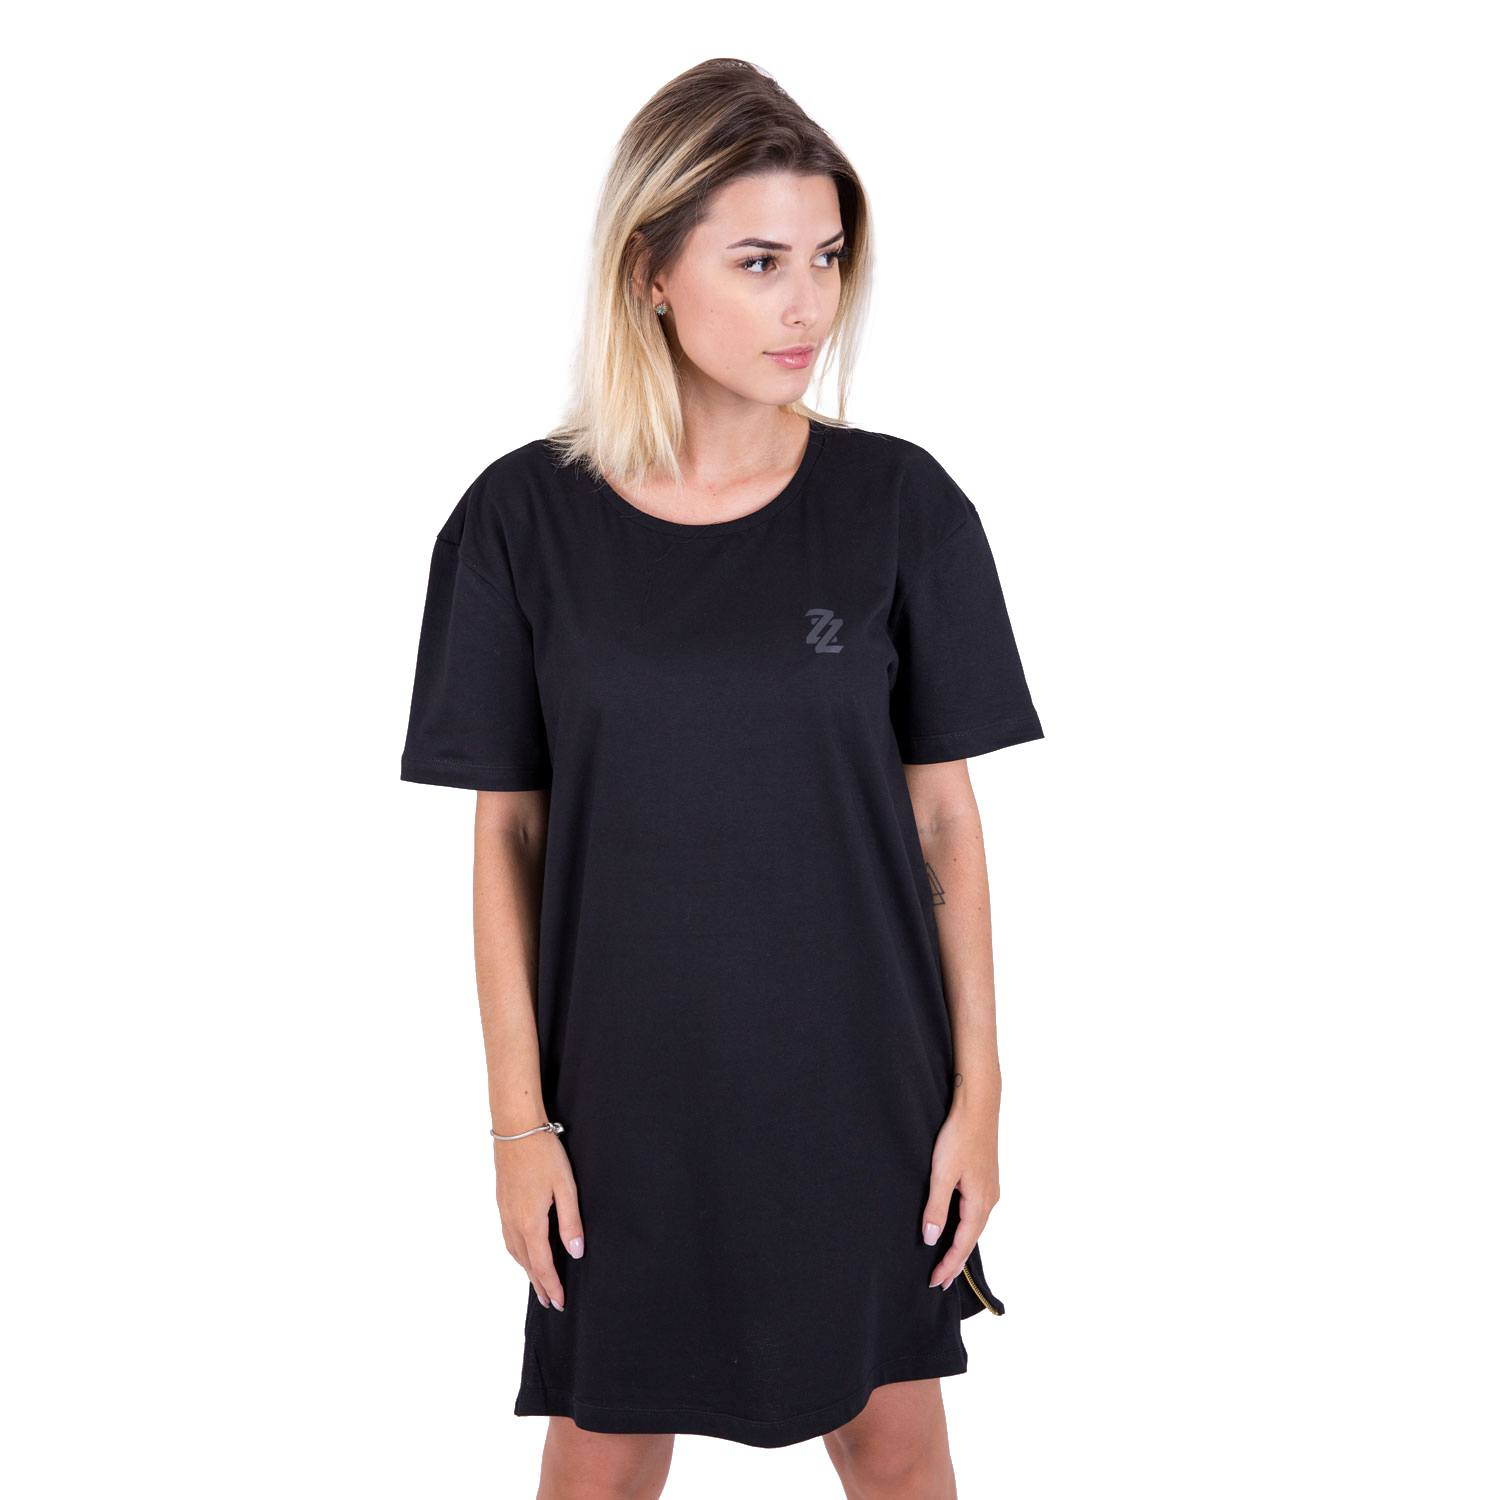 Camiseta Black n' Gold  Oversized Feminina